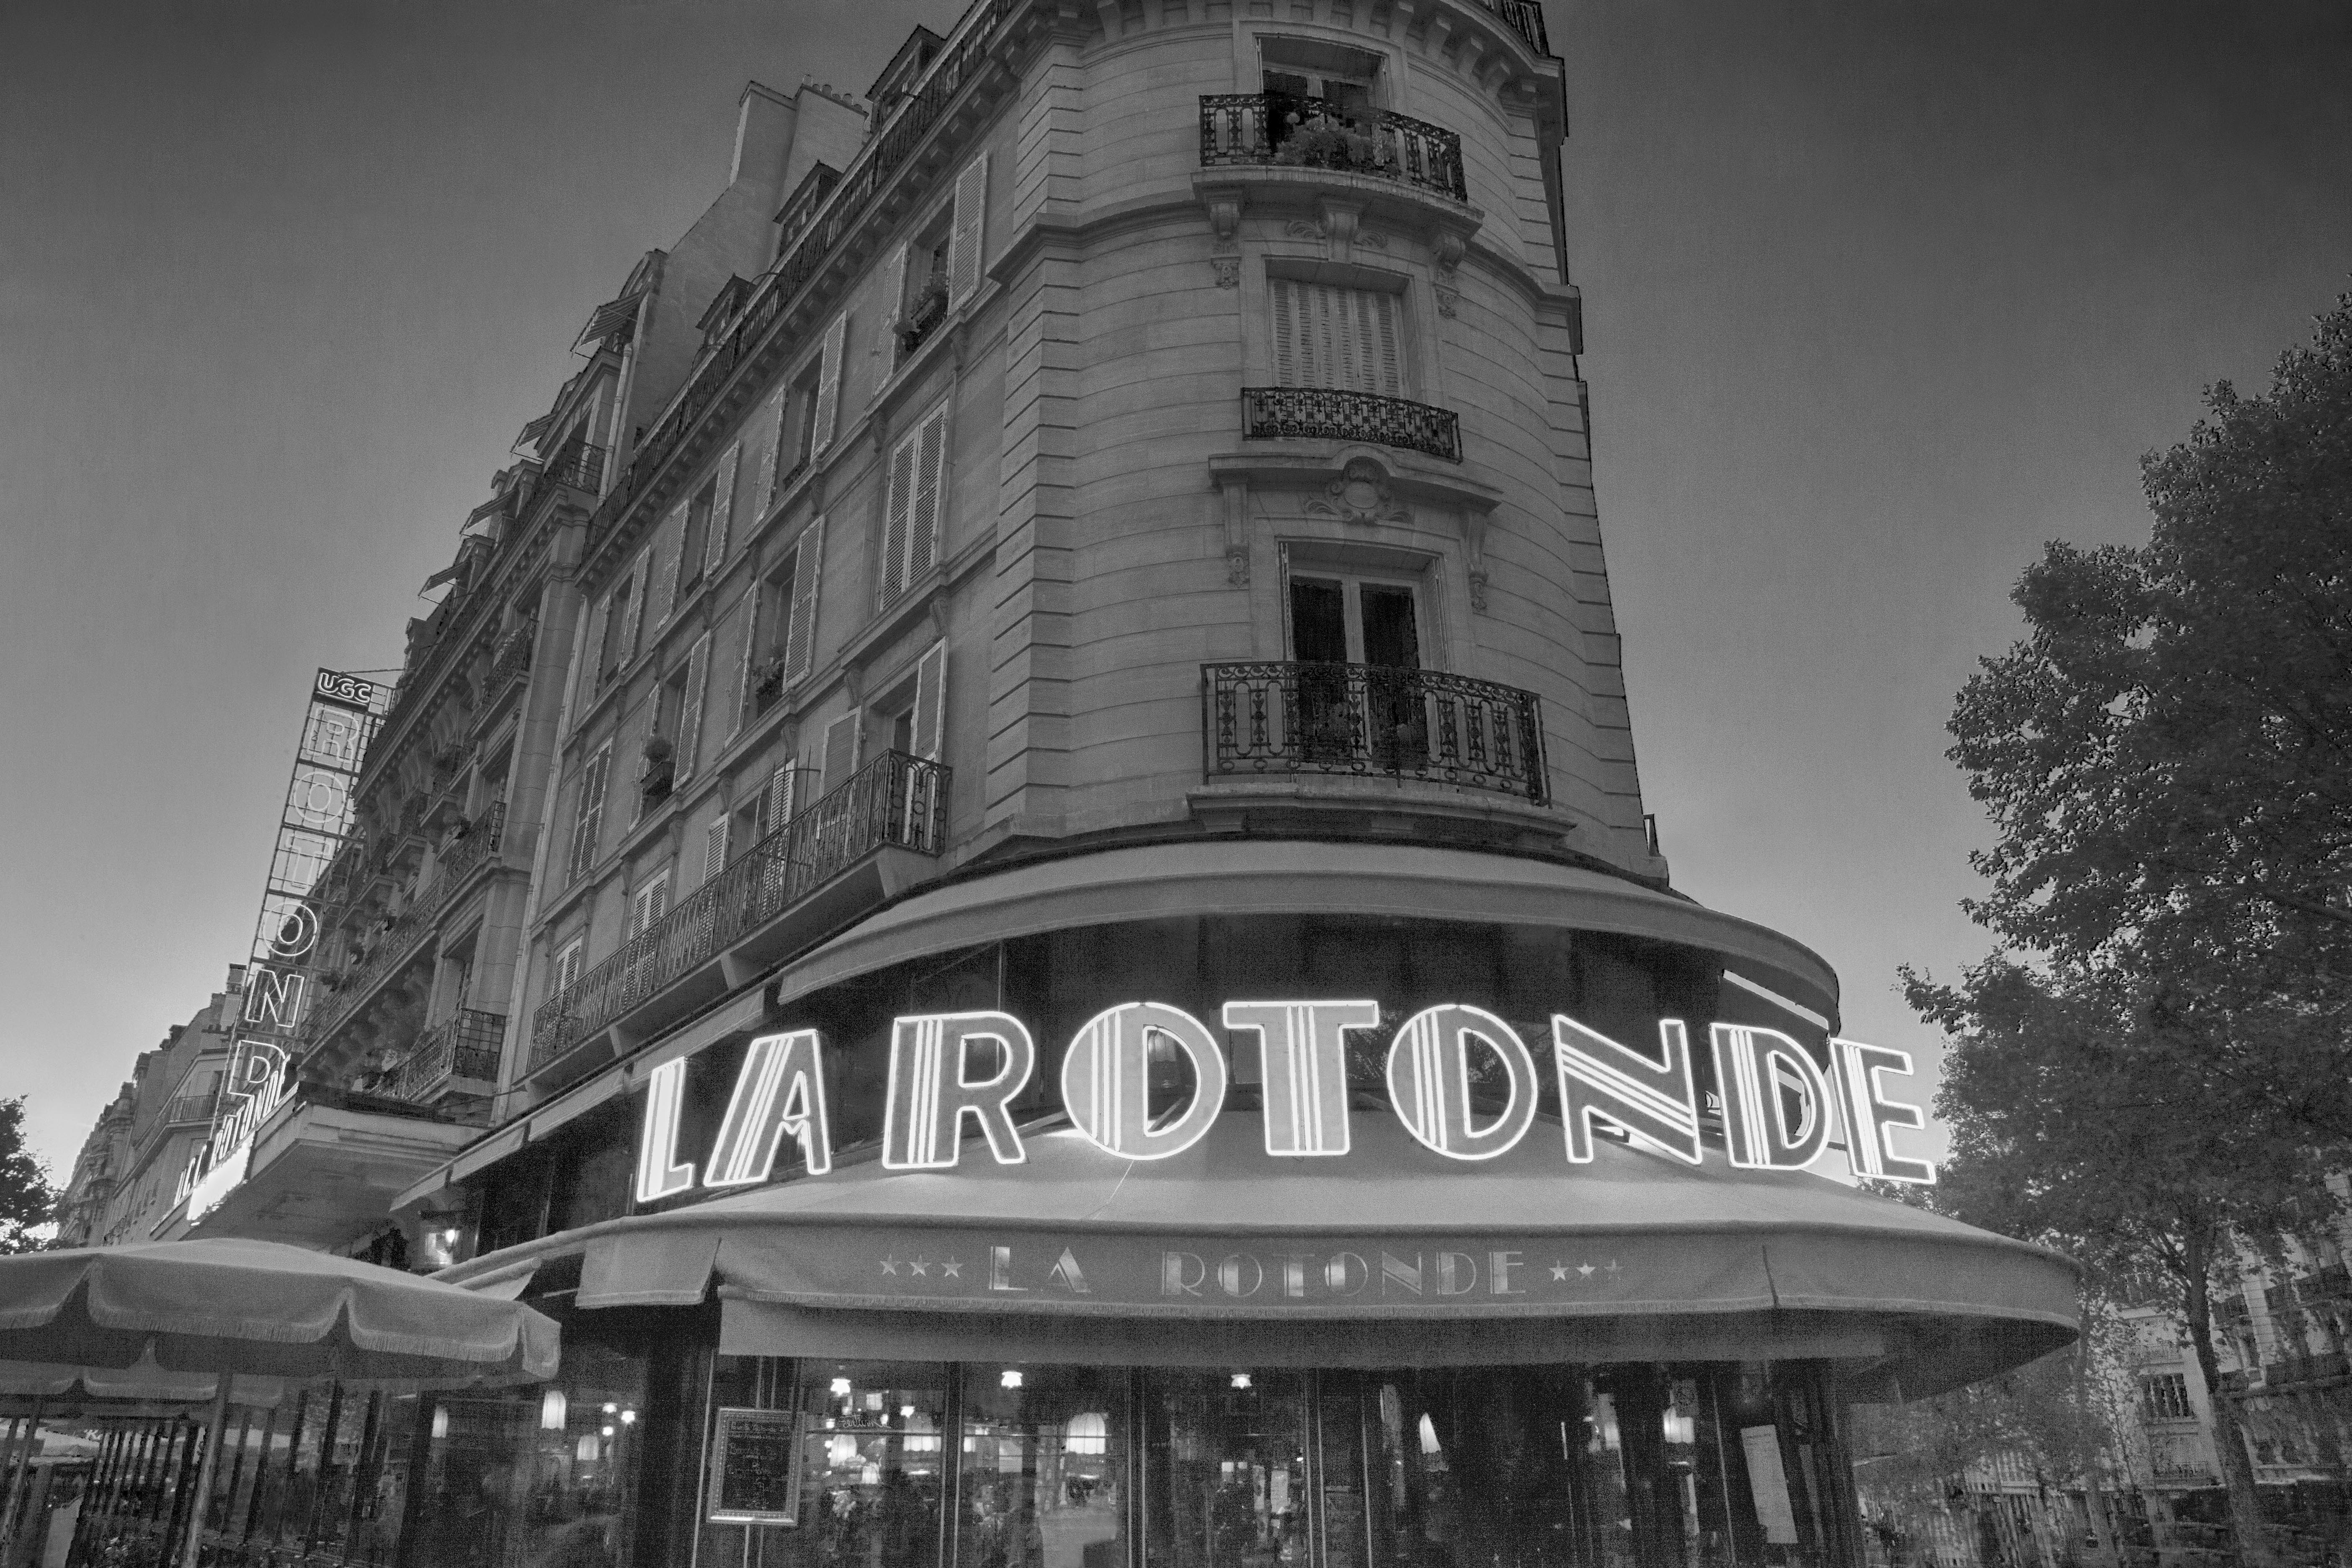 Paris La Rotonde Cafe